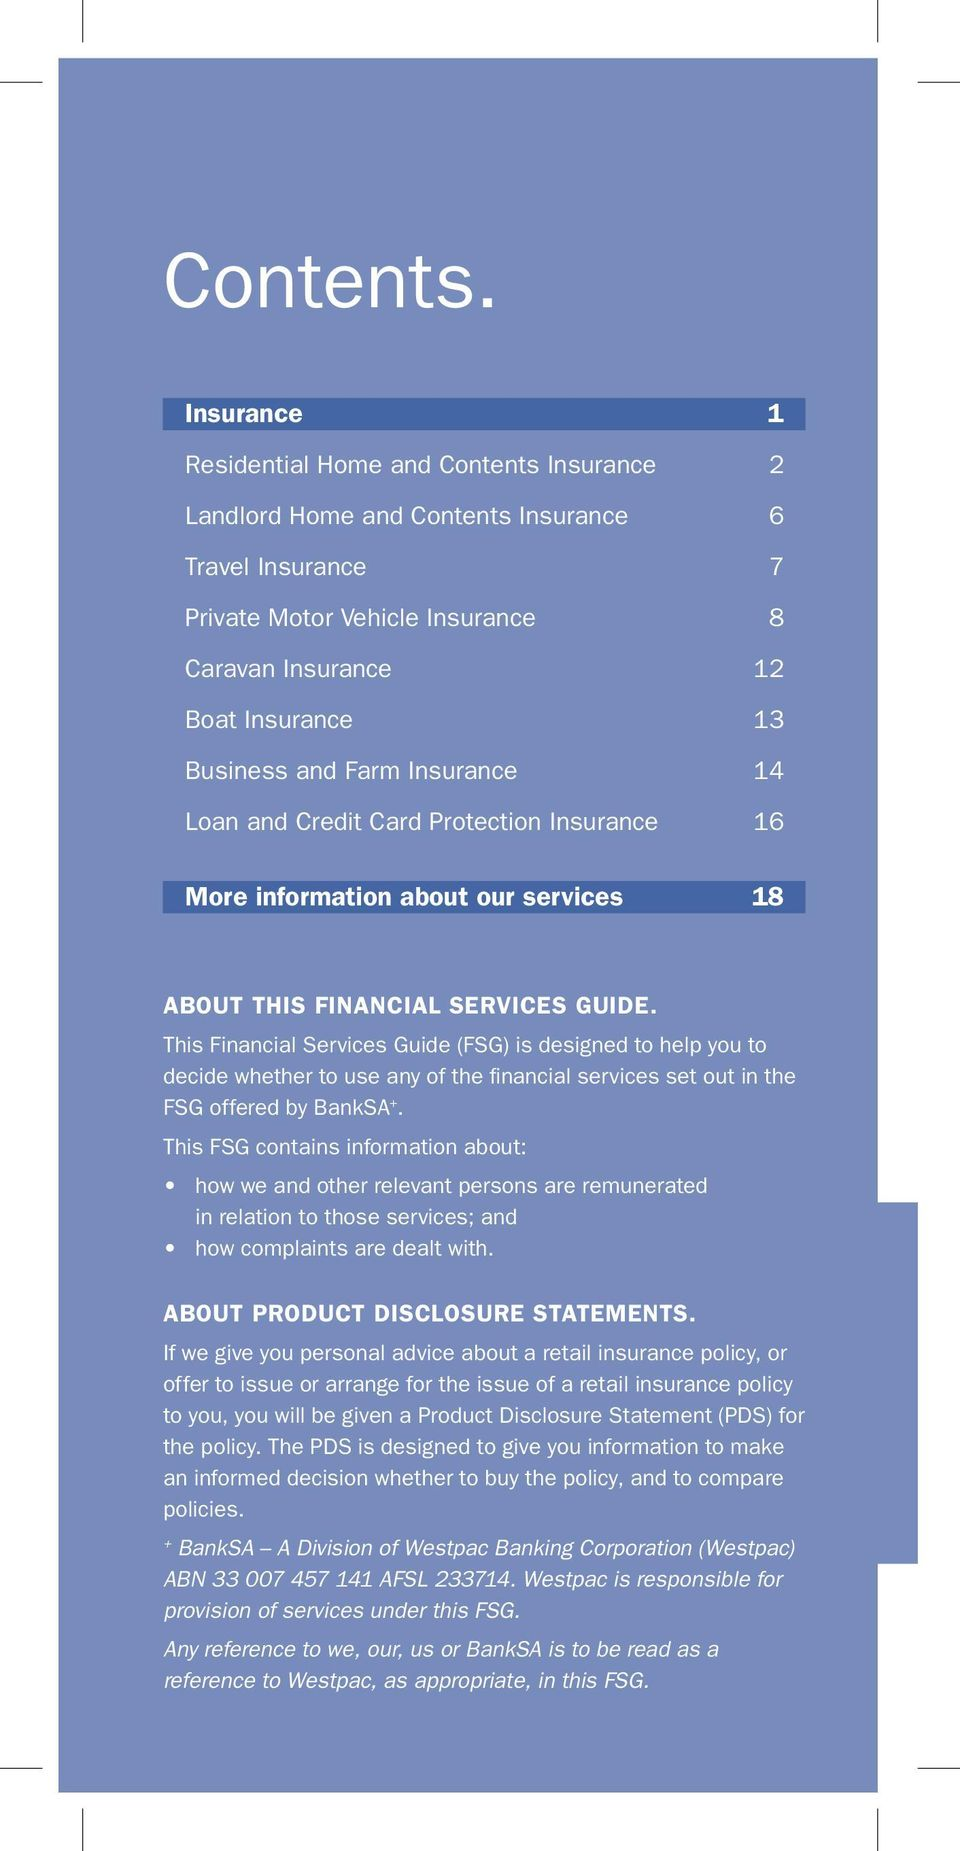 Farm Insurance 14 Loan and Credit Card Protection Insurance 16 More information about our services 18 About this Financial Services Guide.